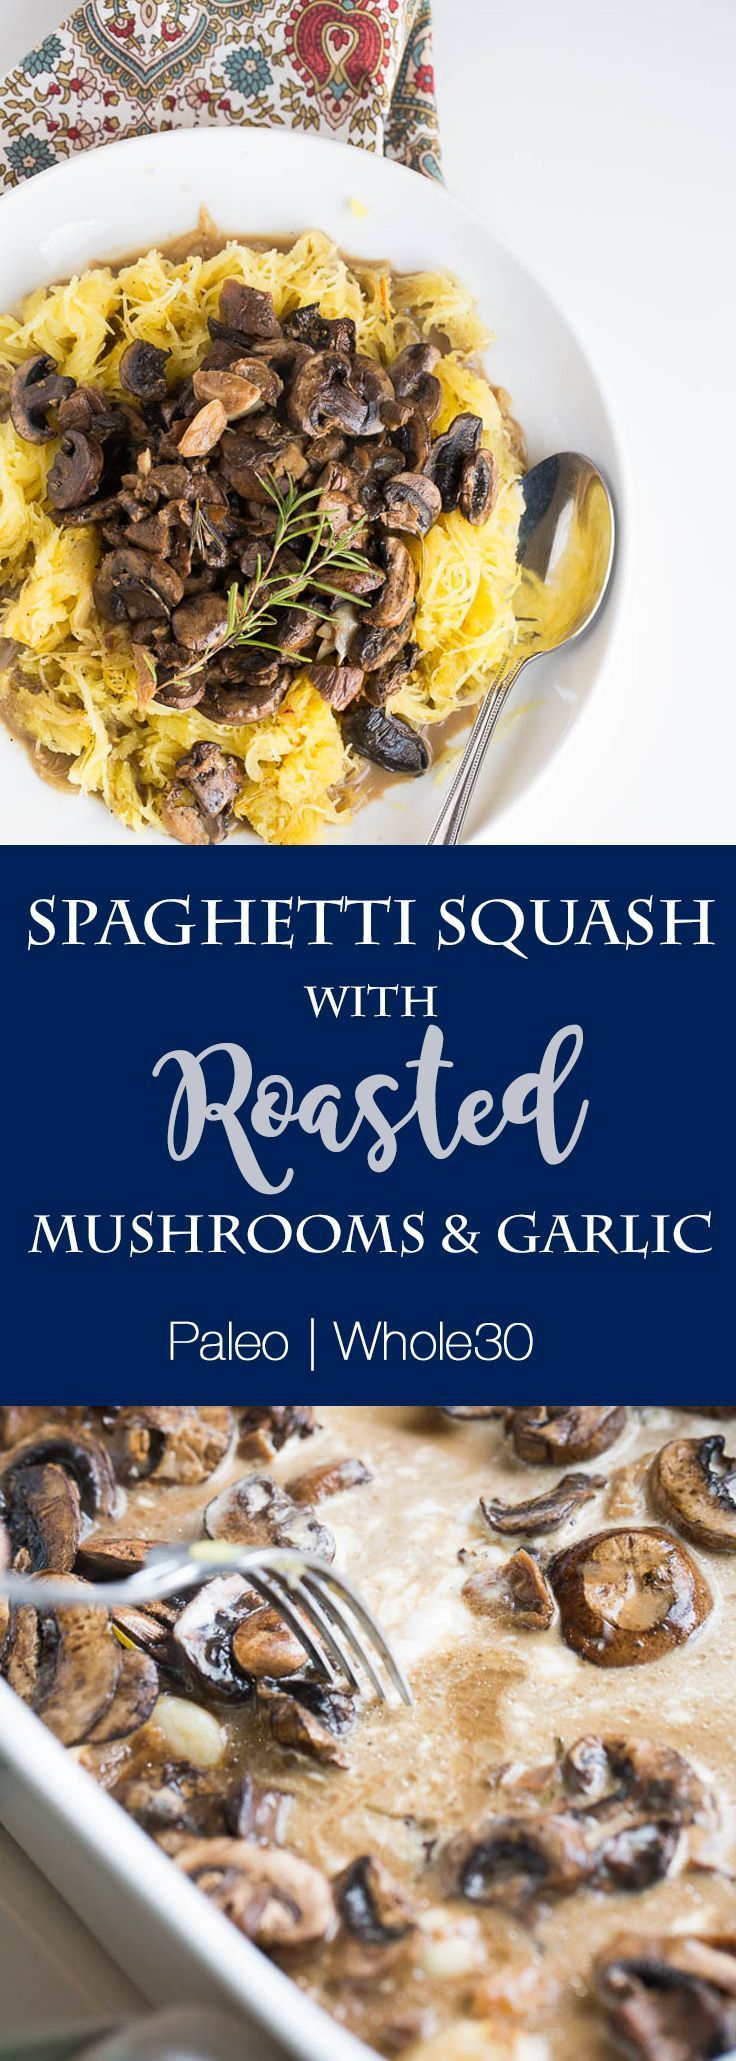 A great one-pan weeknight dinner recipe! | paleo recipes | Whole30 recipes | spaghetti squash recipe | mushroom recipes | perrysplate.com